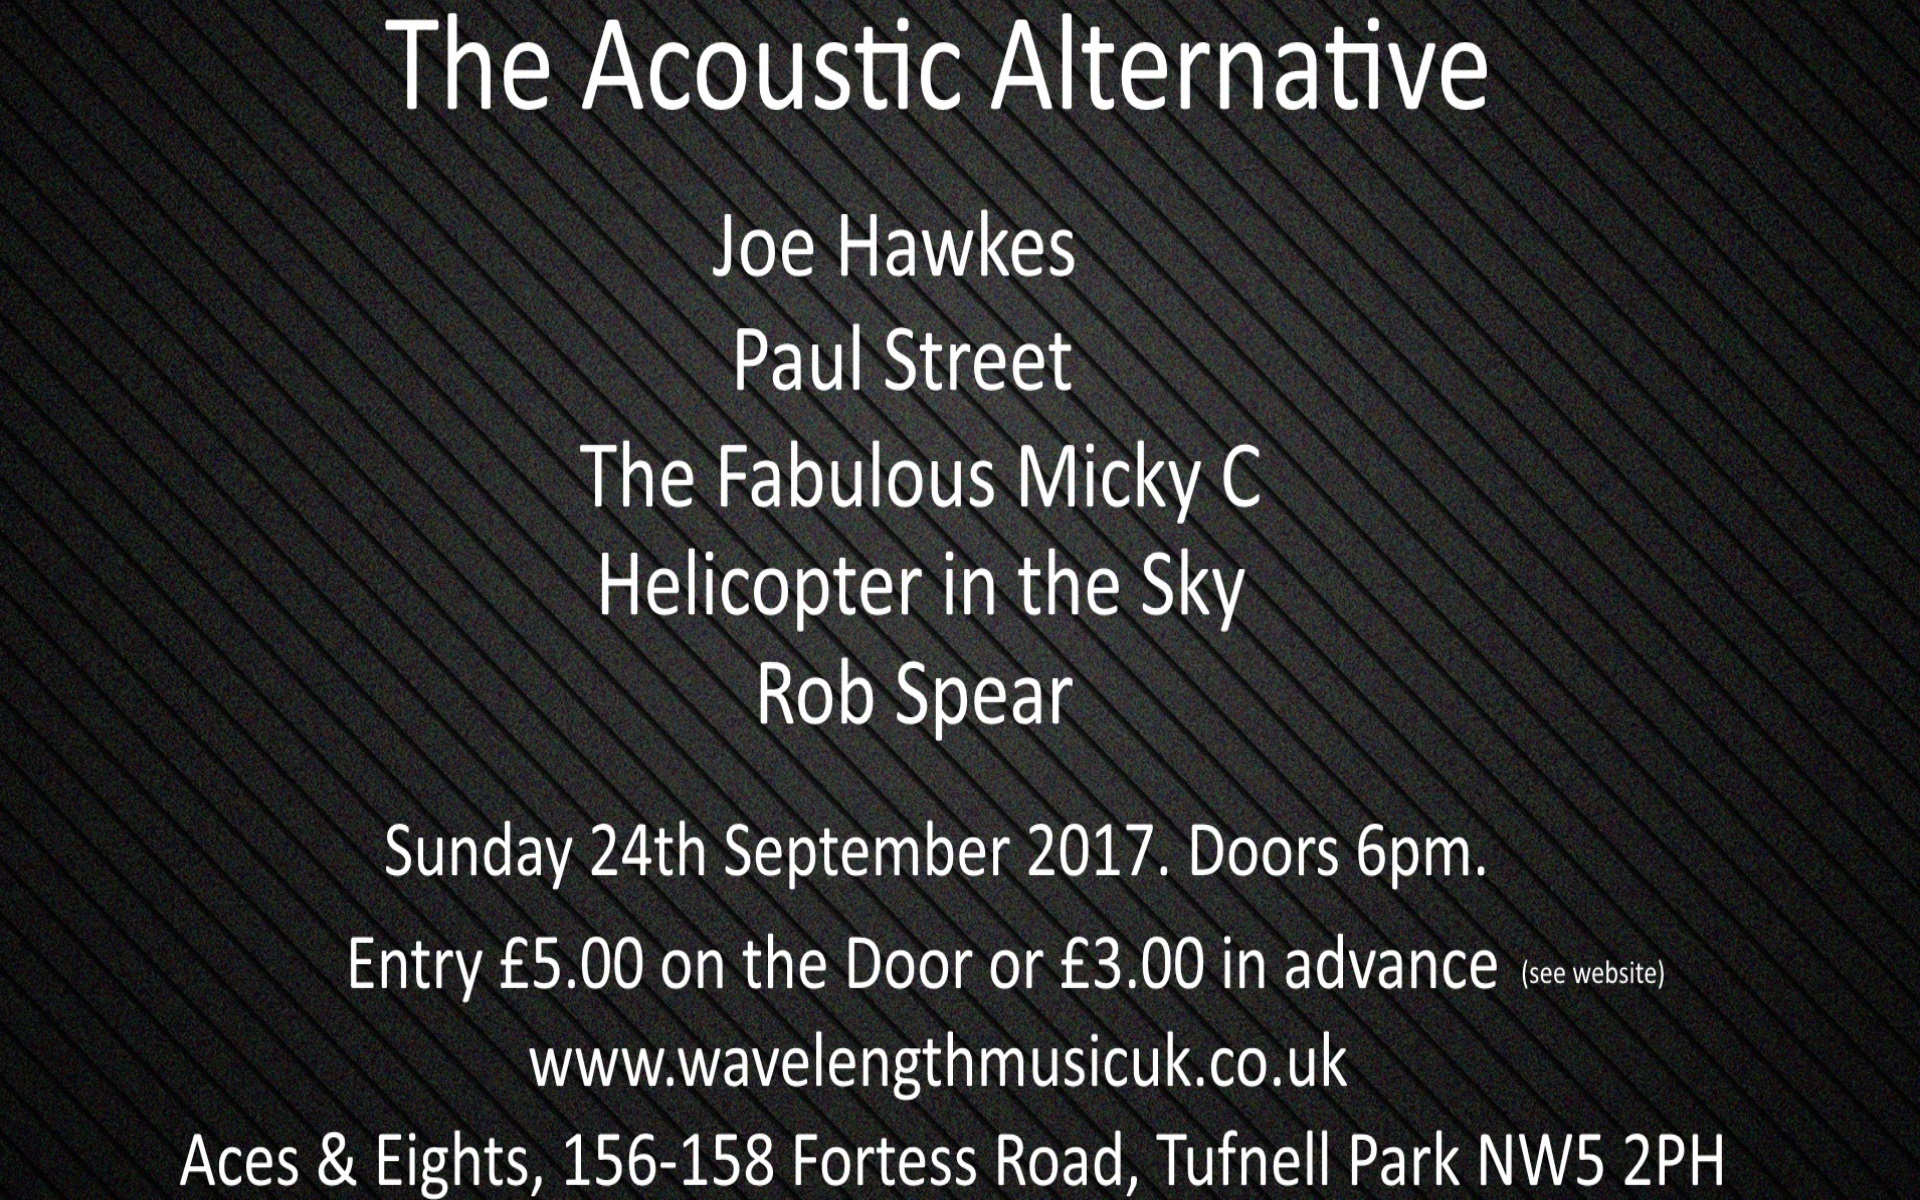 The Acoustic Alternative